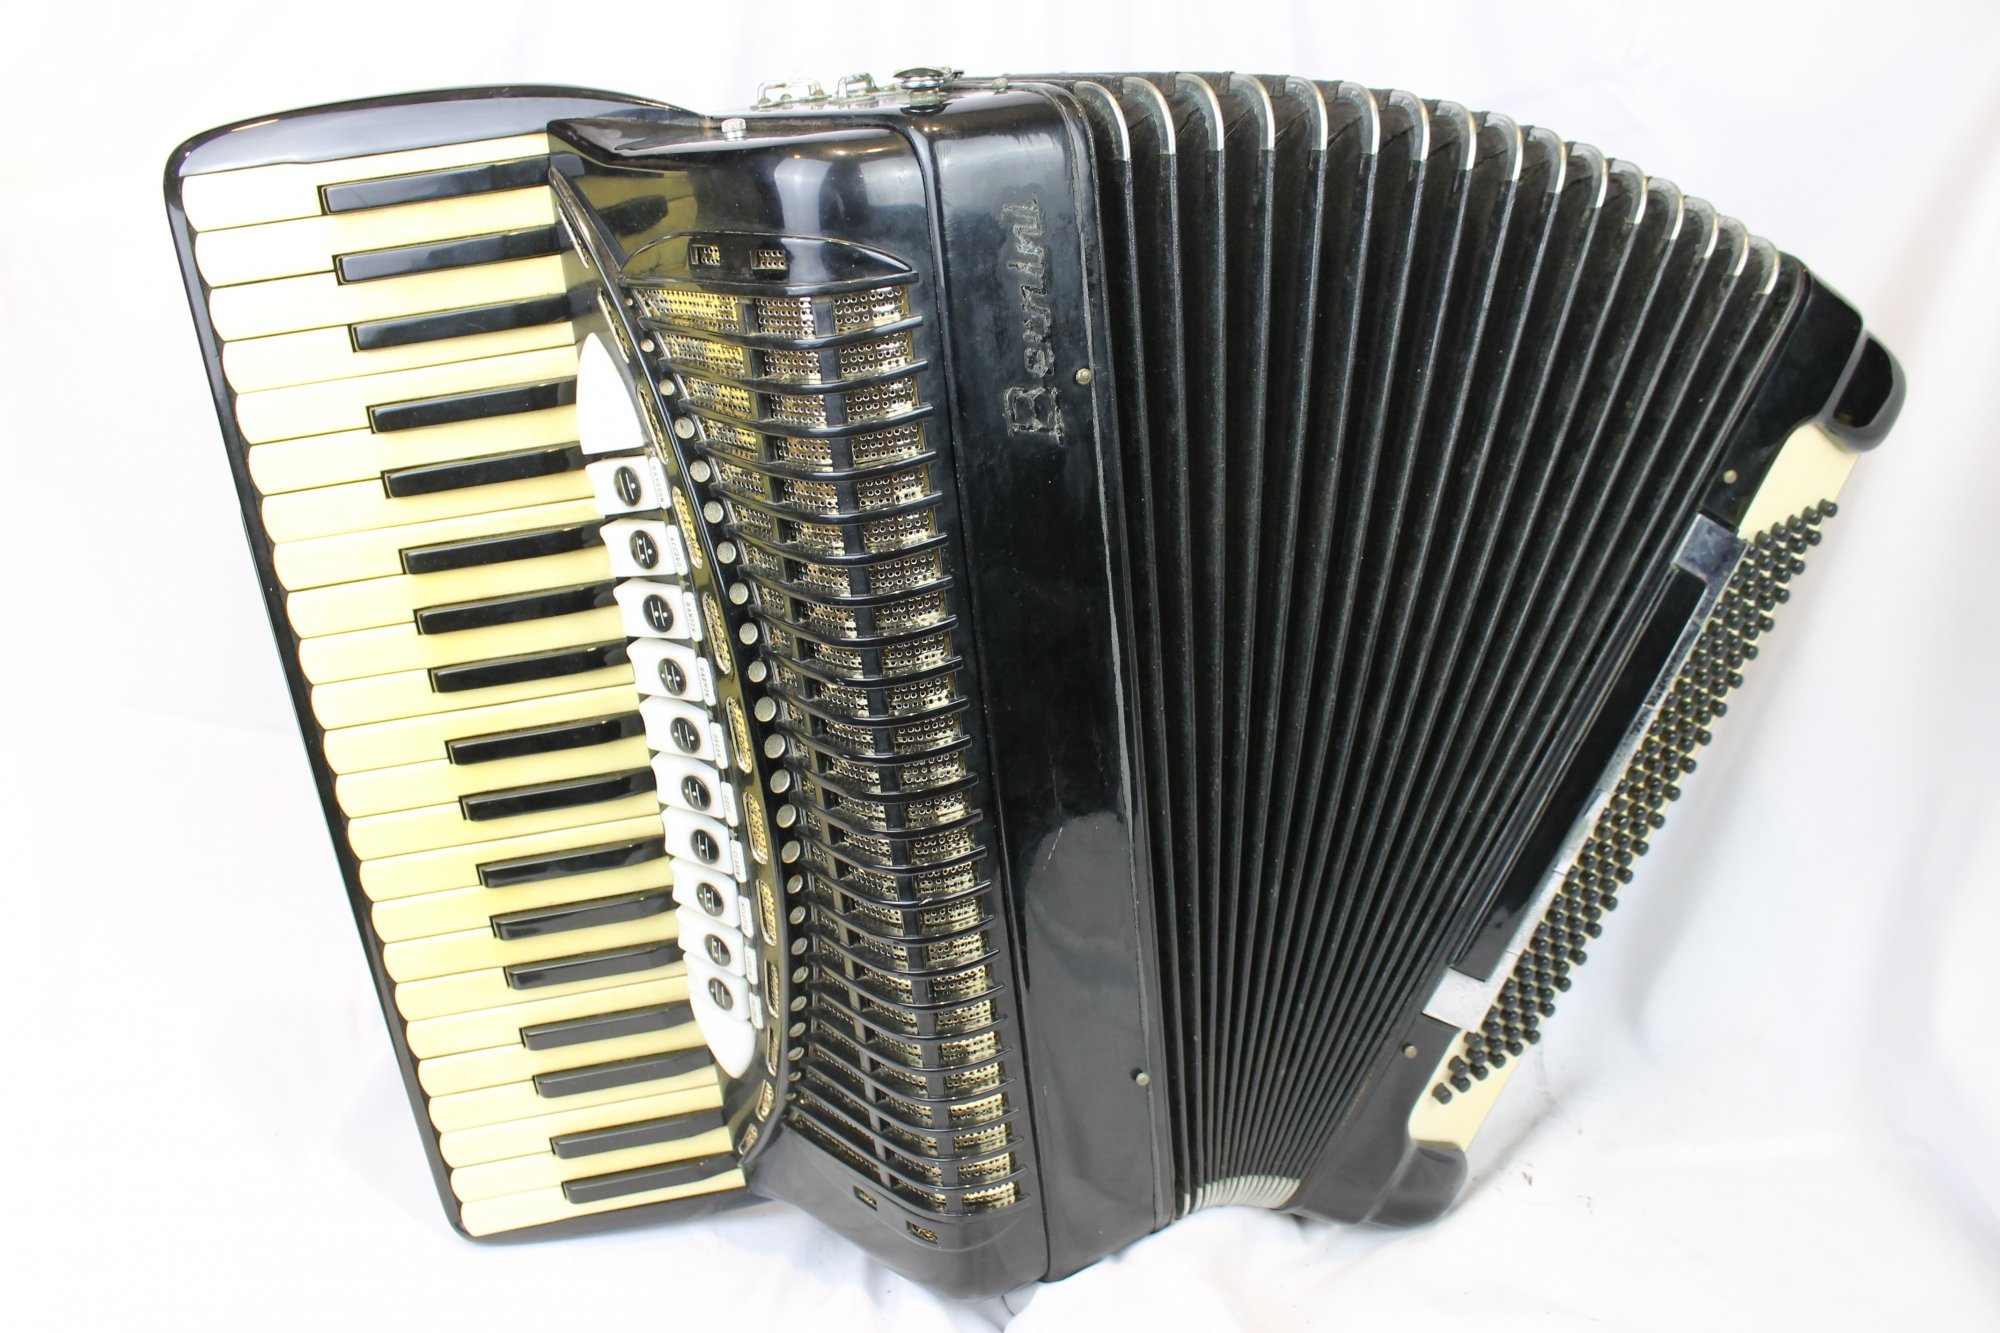 4119 - Black Bertini Piano Accordion LMMH 41 120